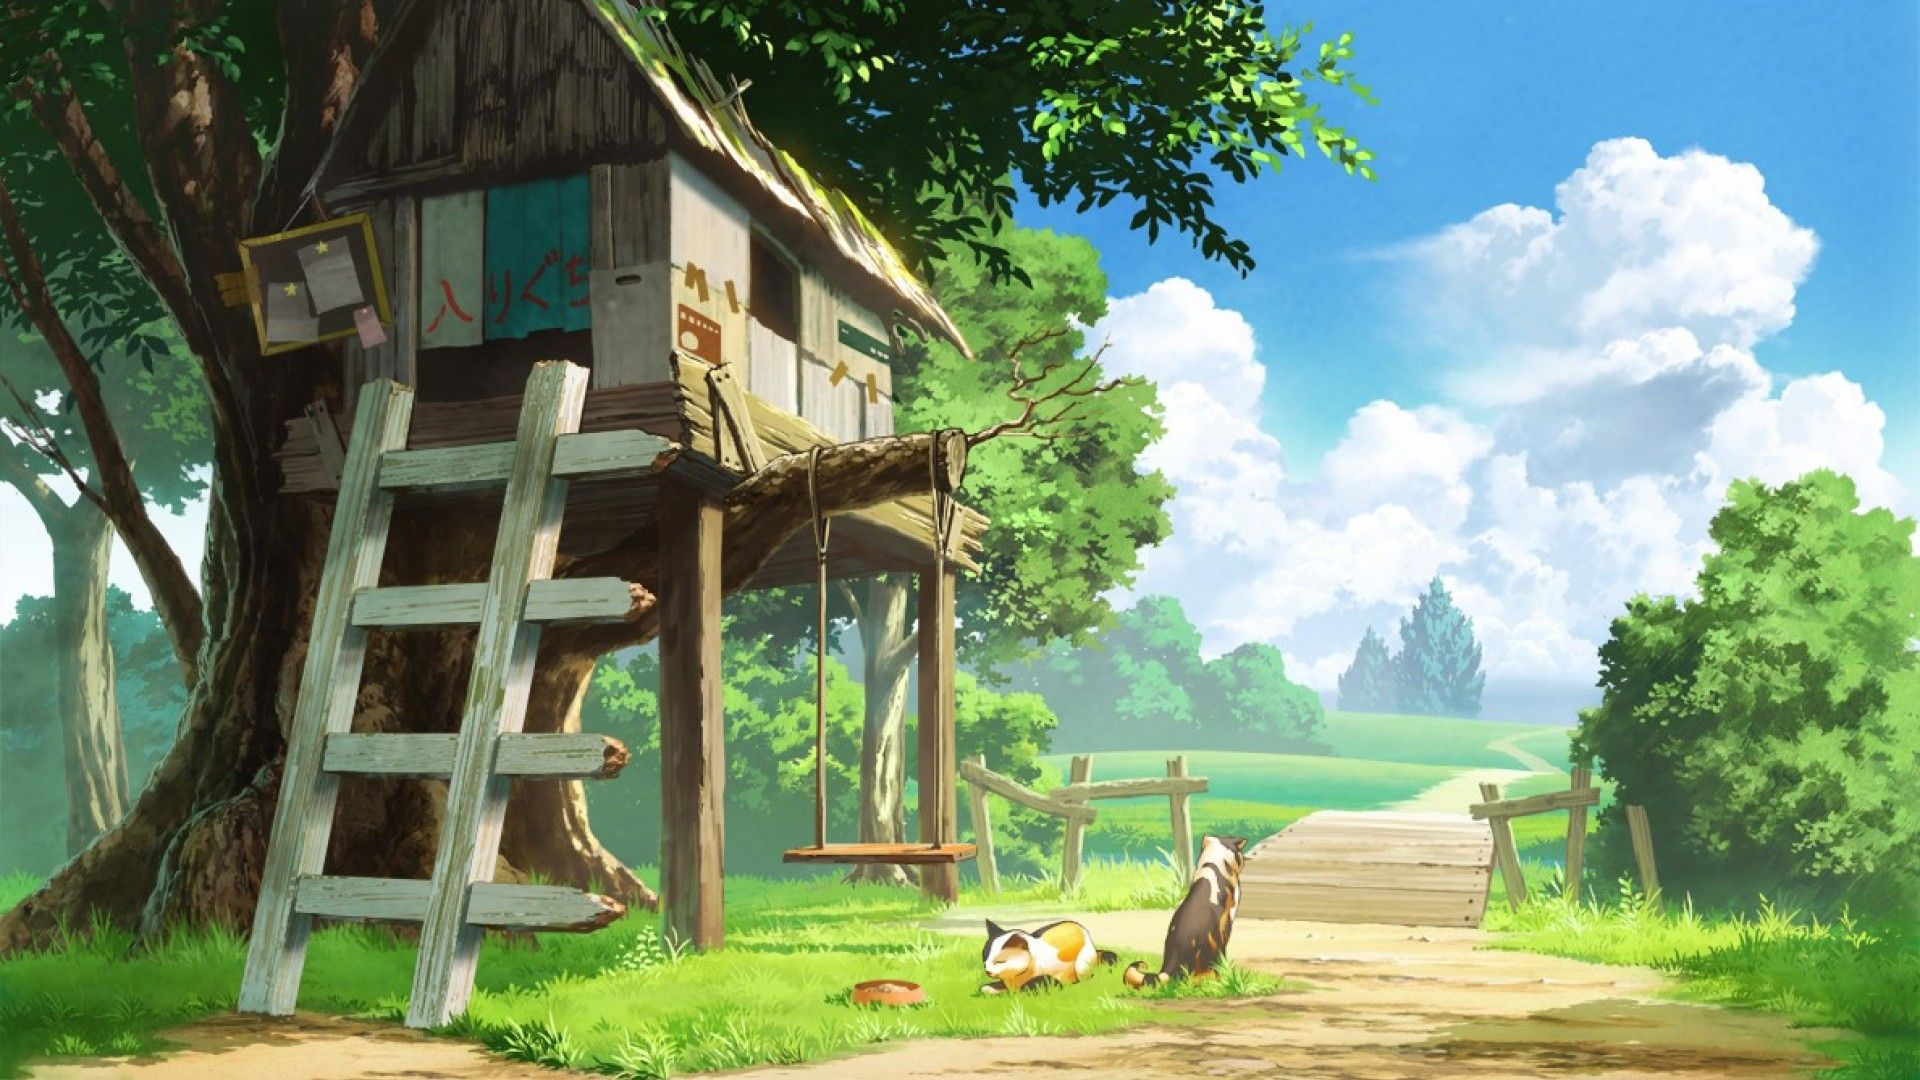 Pin By Stephanie On Different Places To Visit Tree House Wallpaper Anime Scenery Wallpaper Anime Scenery